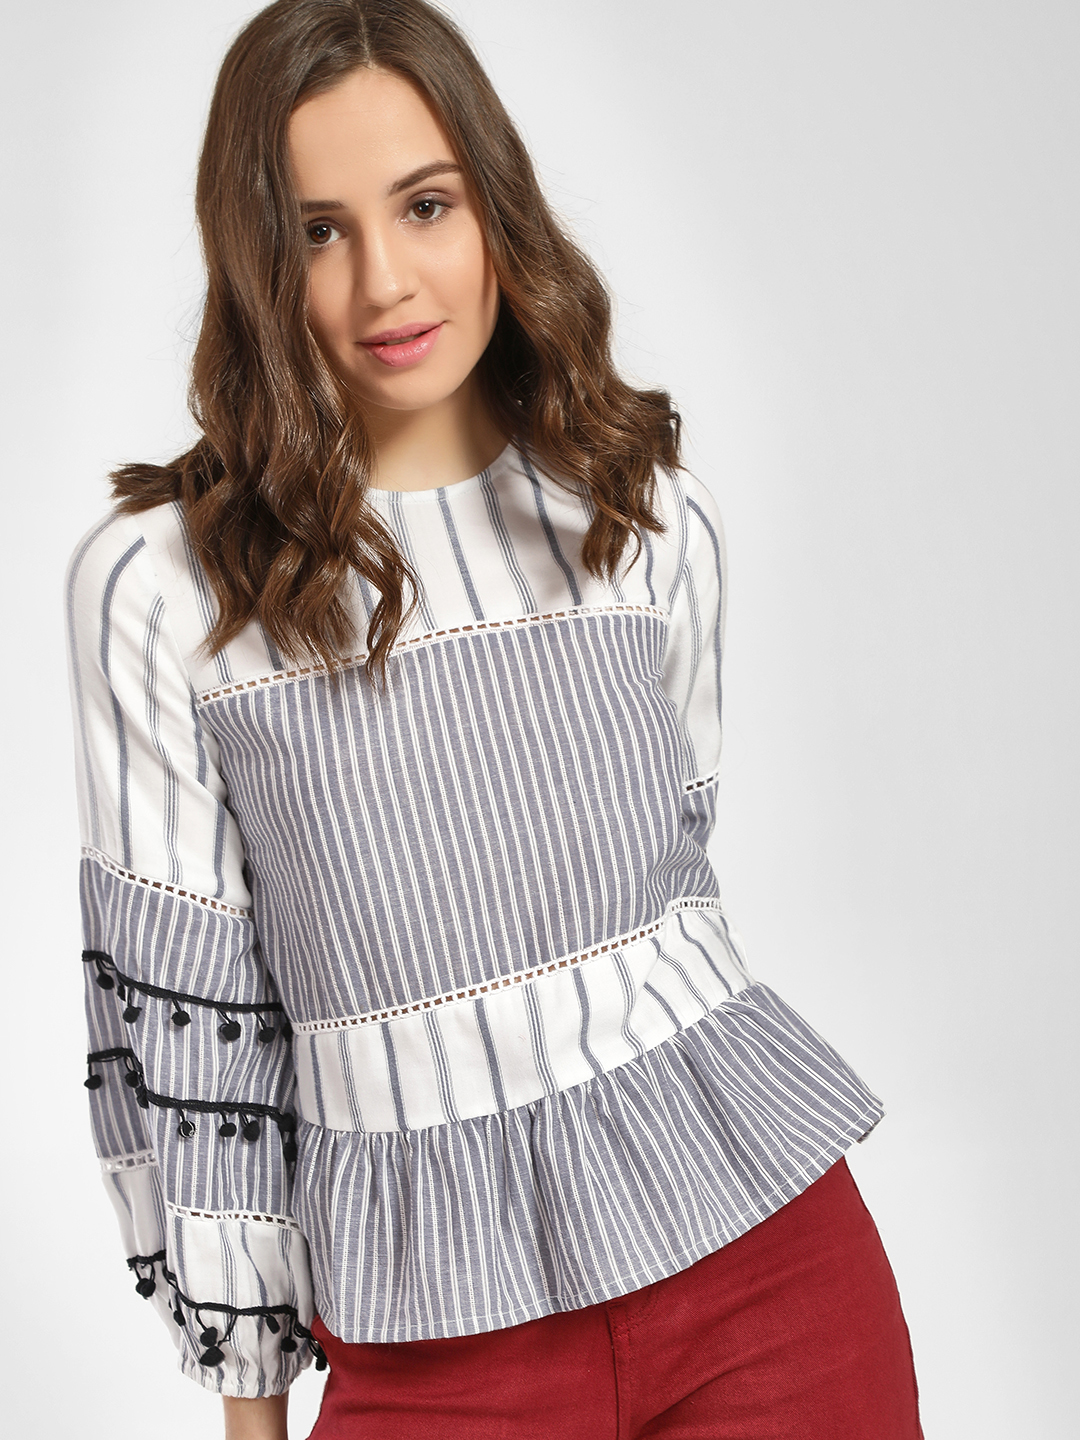 Rena Love Multi Mixed Stripe Peplum Blouse 1